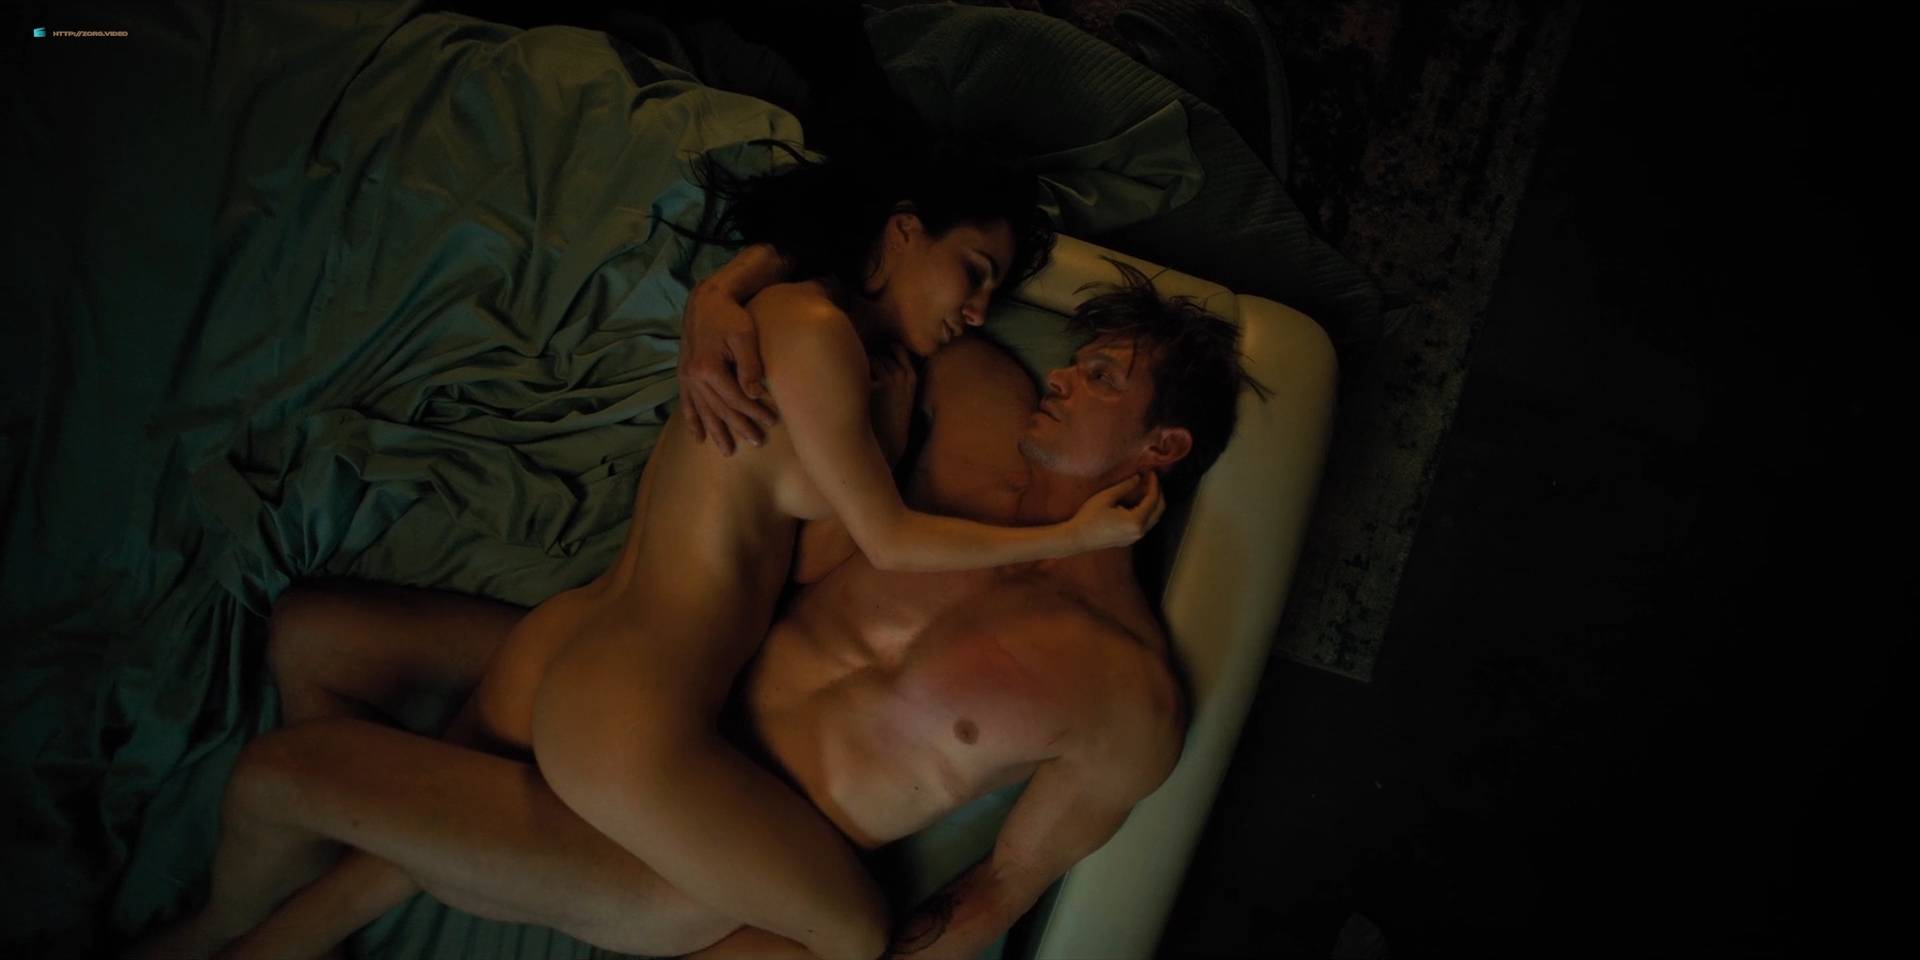 Altered carbon sex scene 10